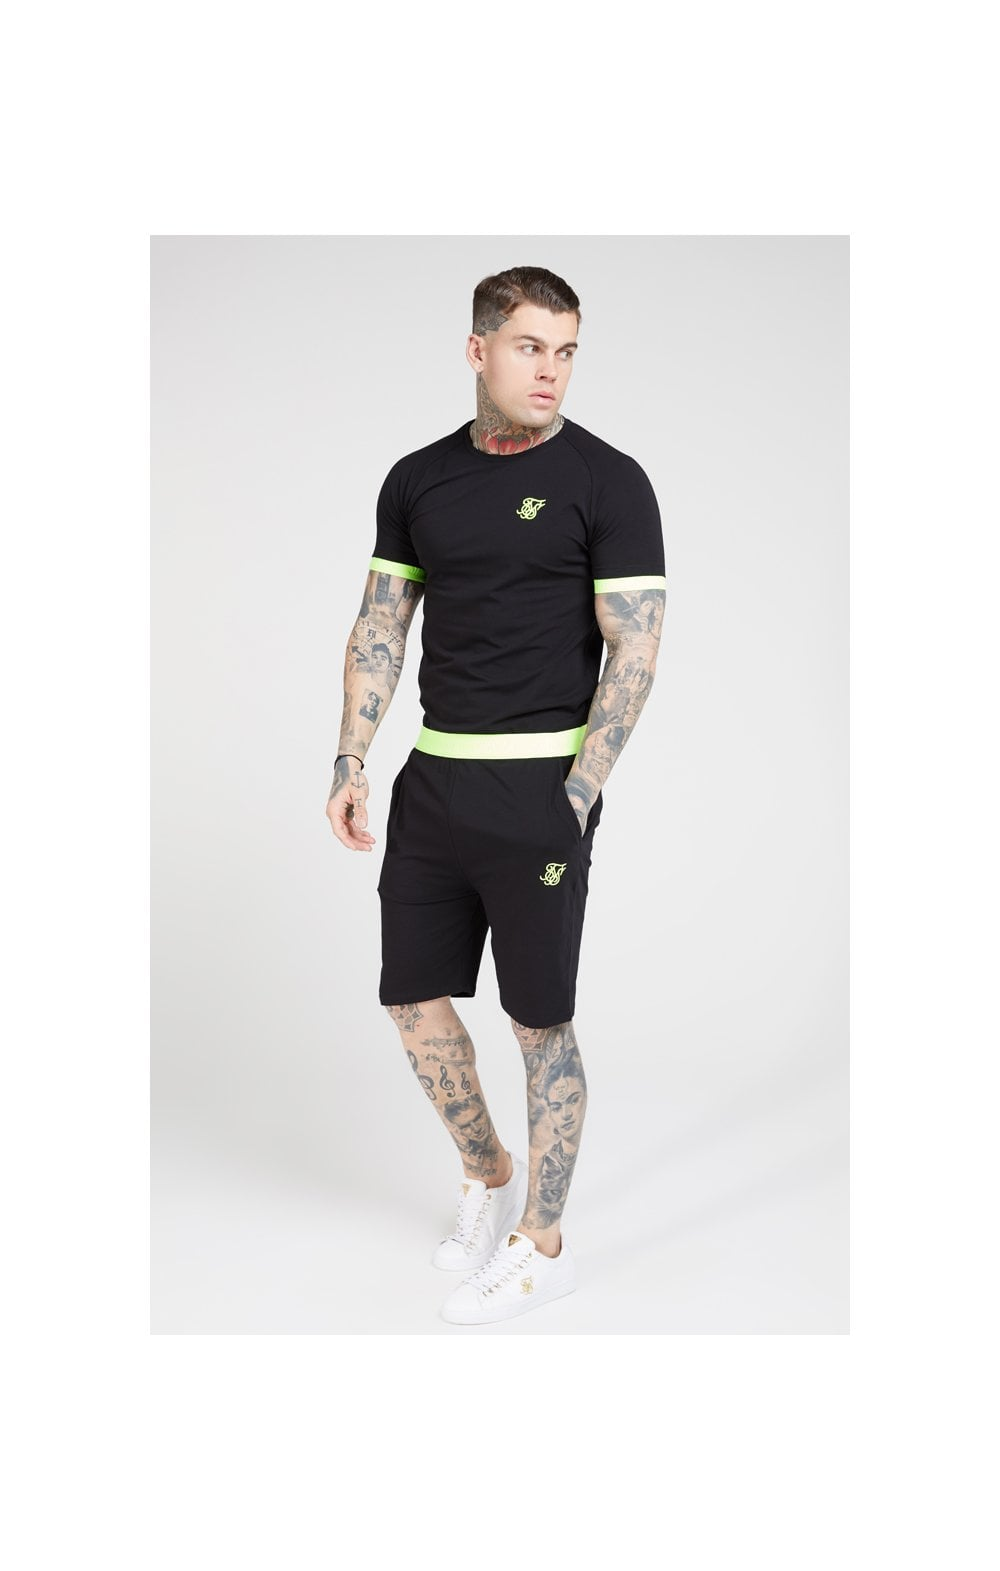 SikSilk S/S Neon Tech Tee – Black & Neon Yellow (3)